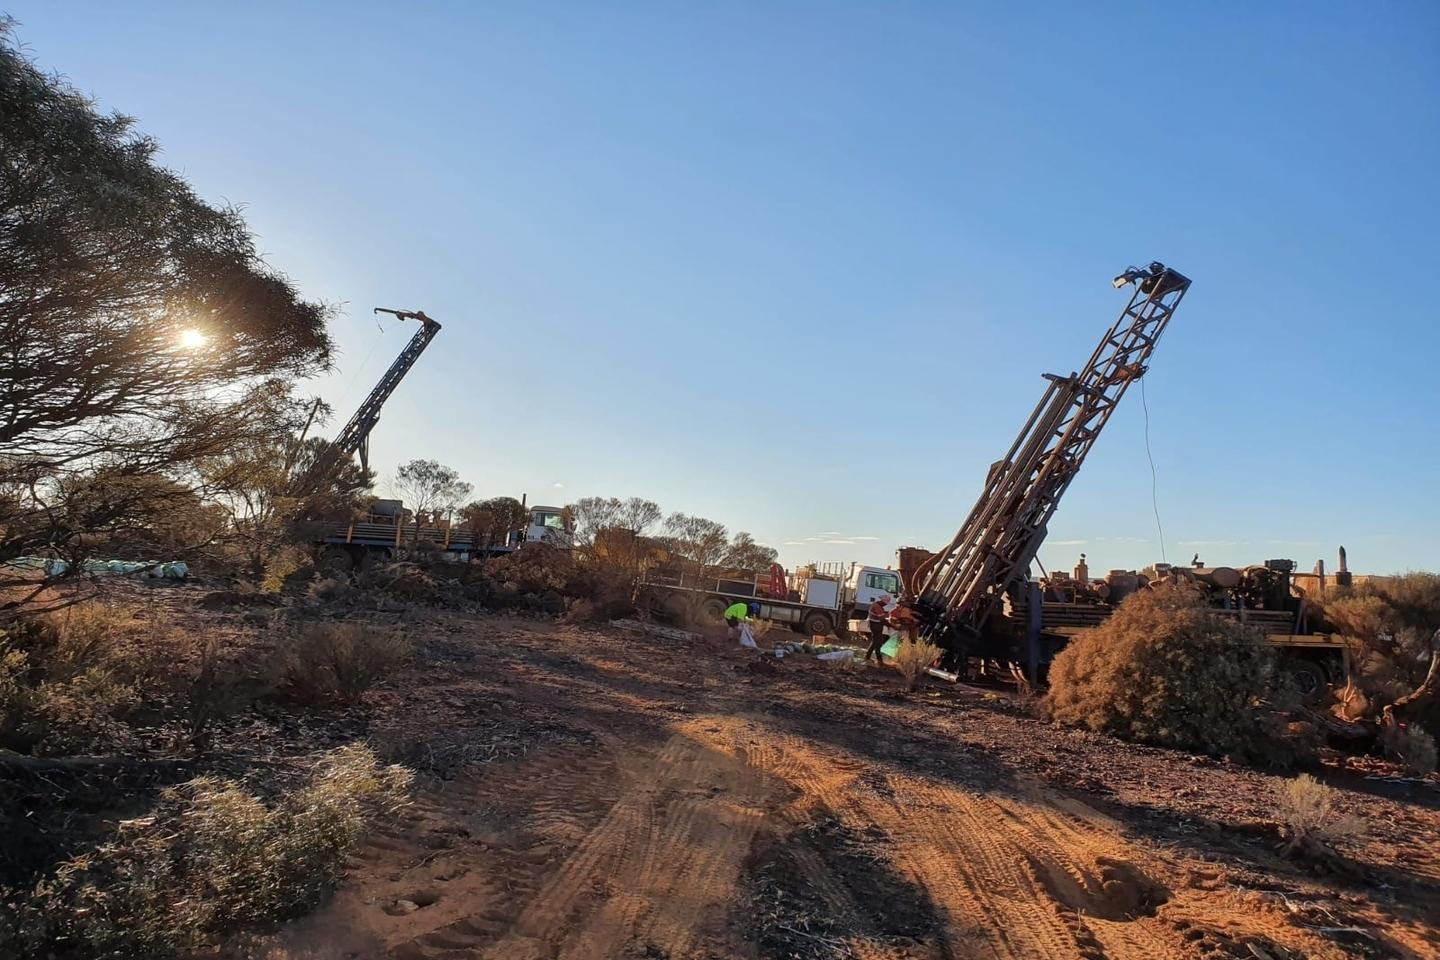 Middle Island gold resource on the rise at Sandstone